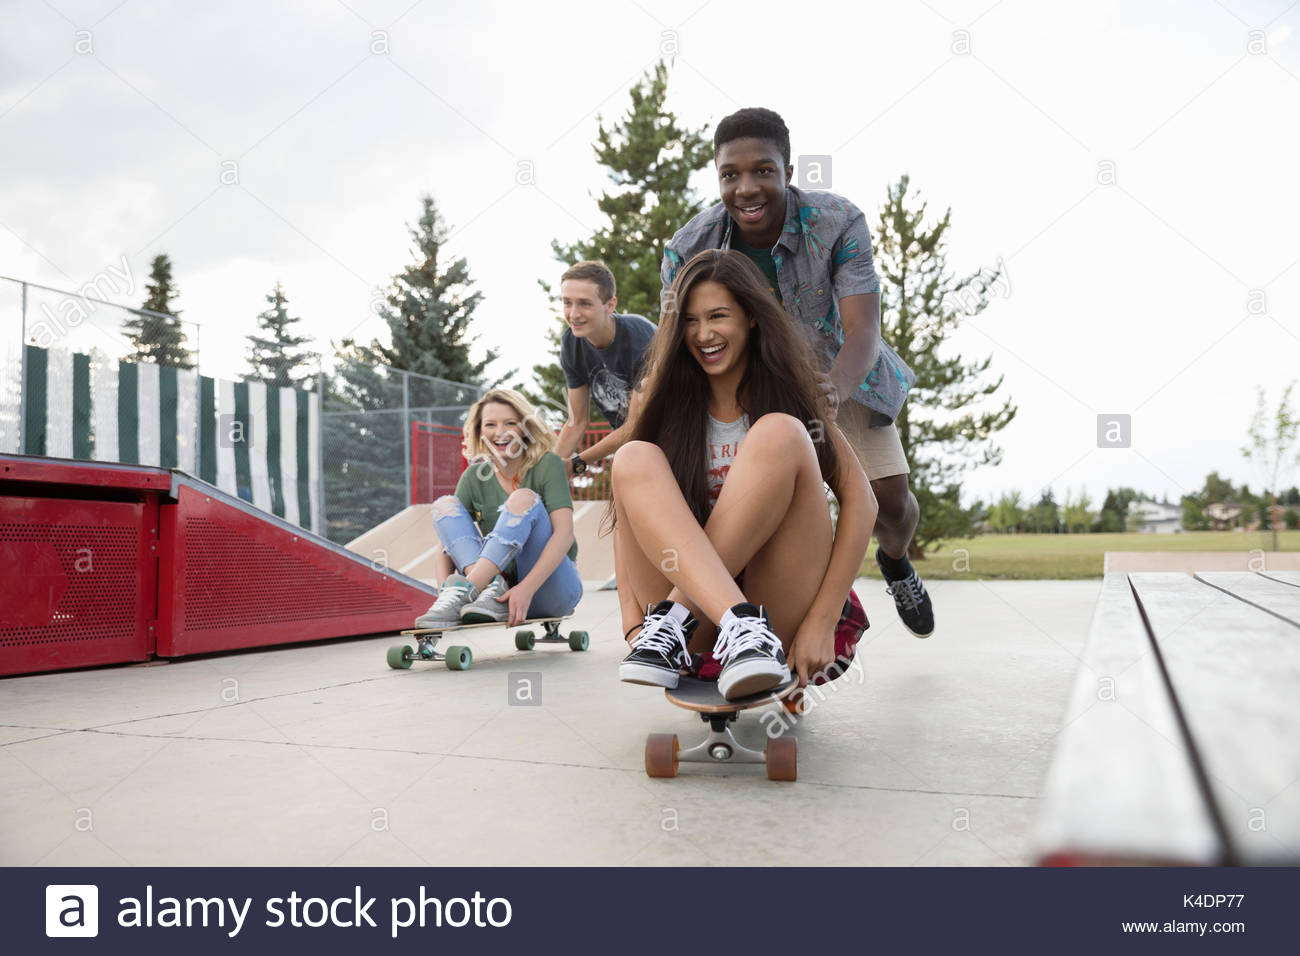 Playful teenage friends playing, pushing skateboards at skate park - Stock Image